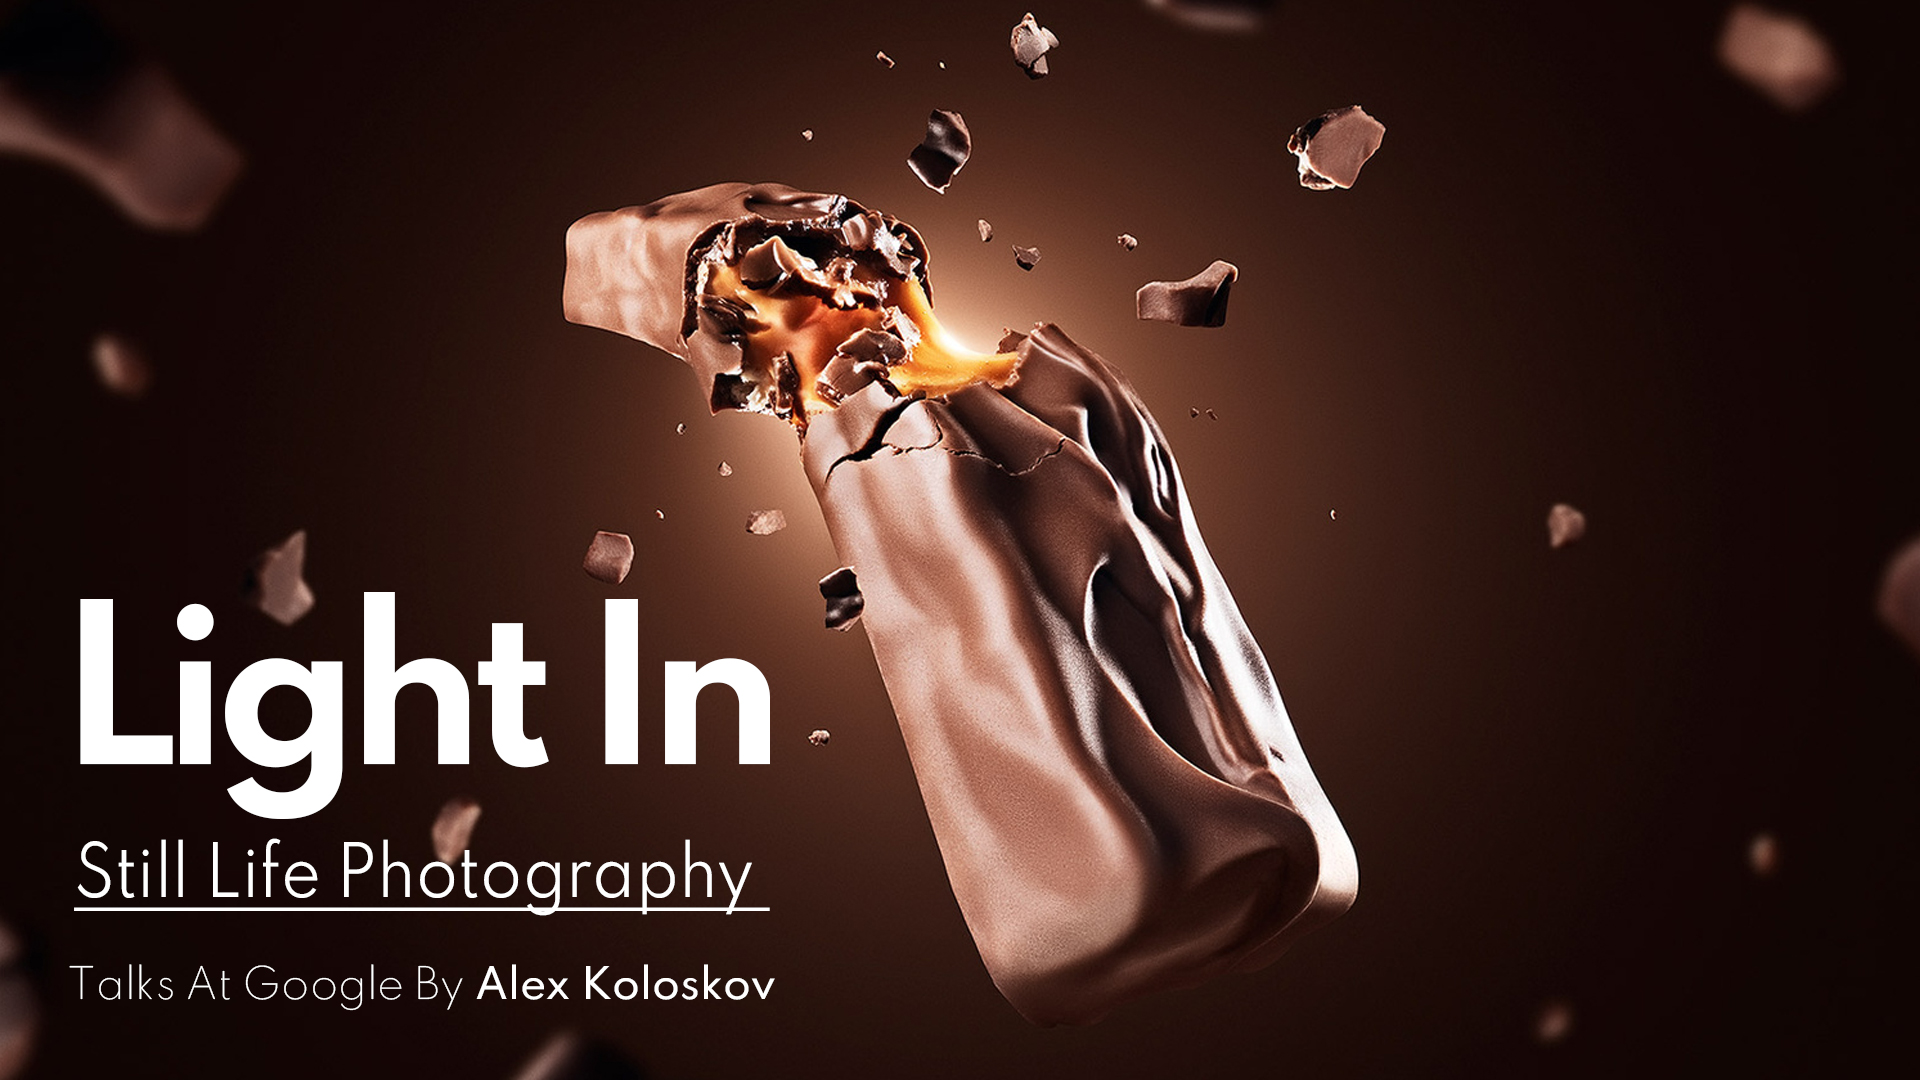 Light In Still Life Photography By Alex Koloskov | Talks At Google